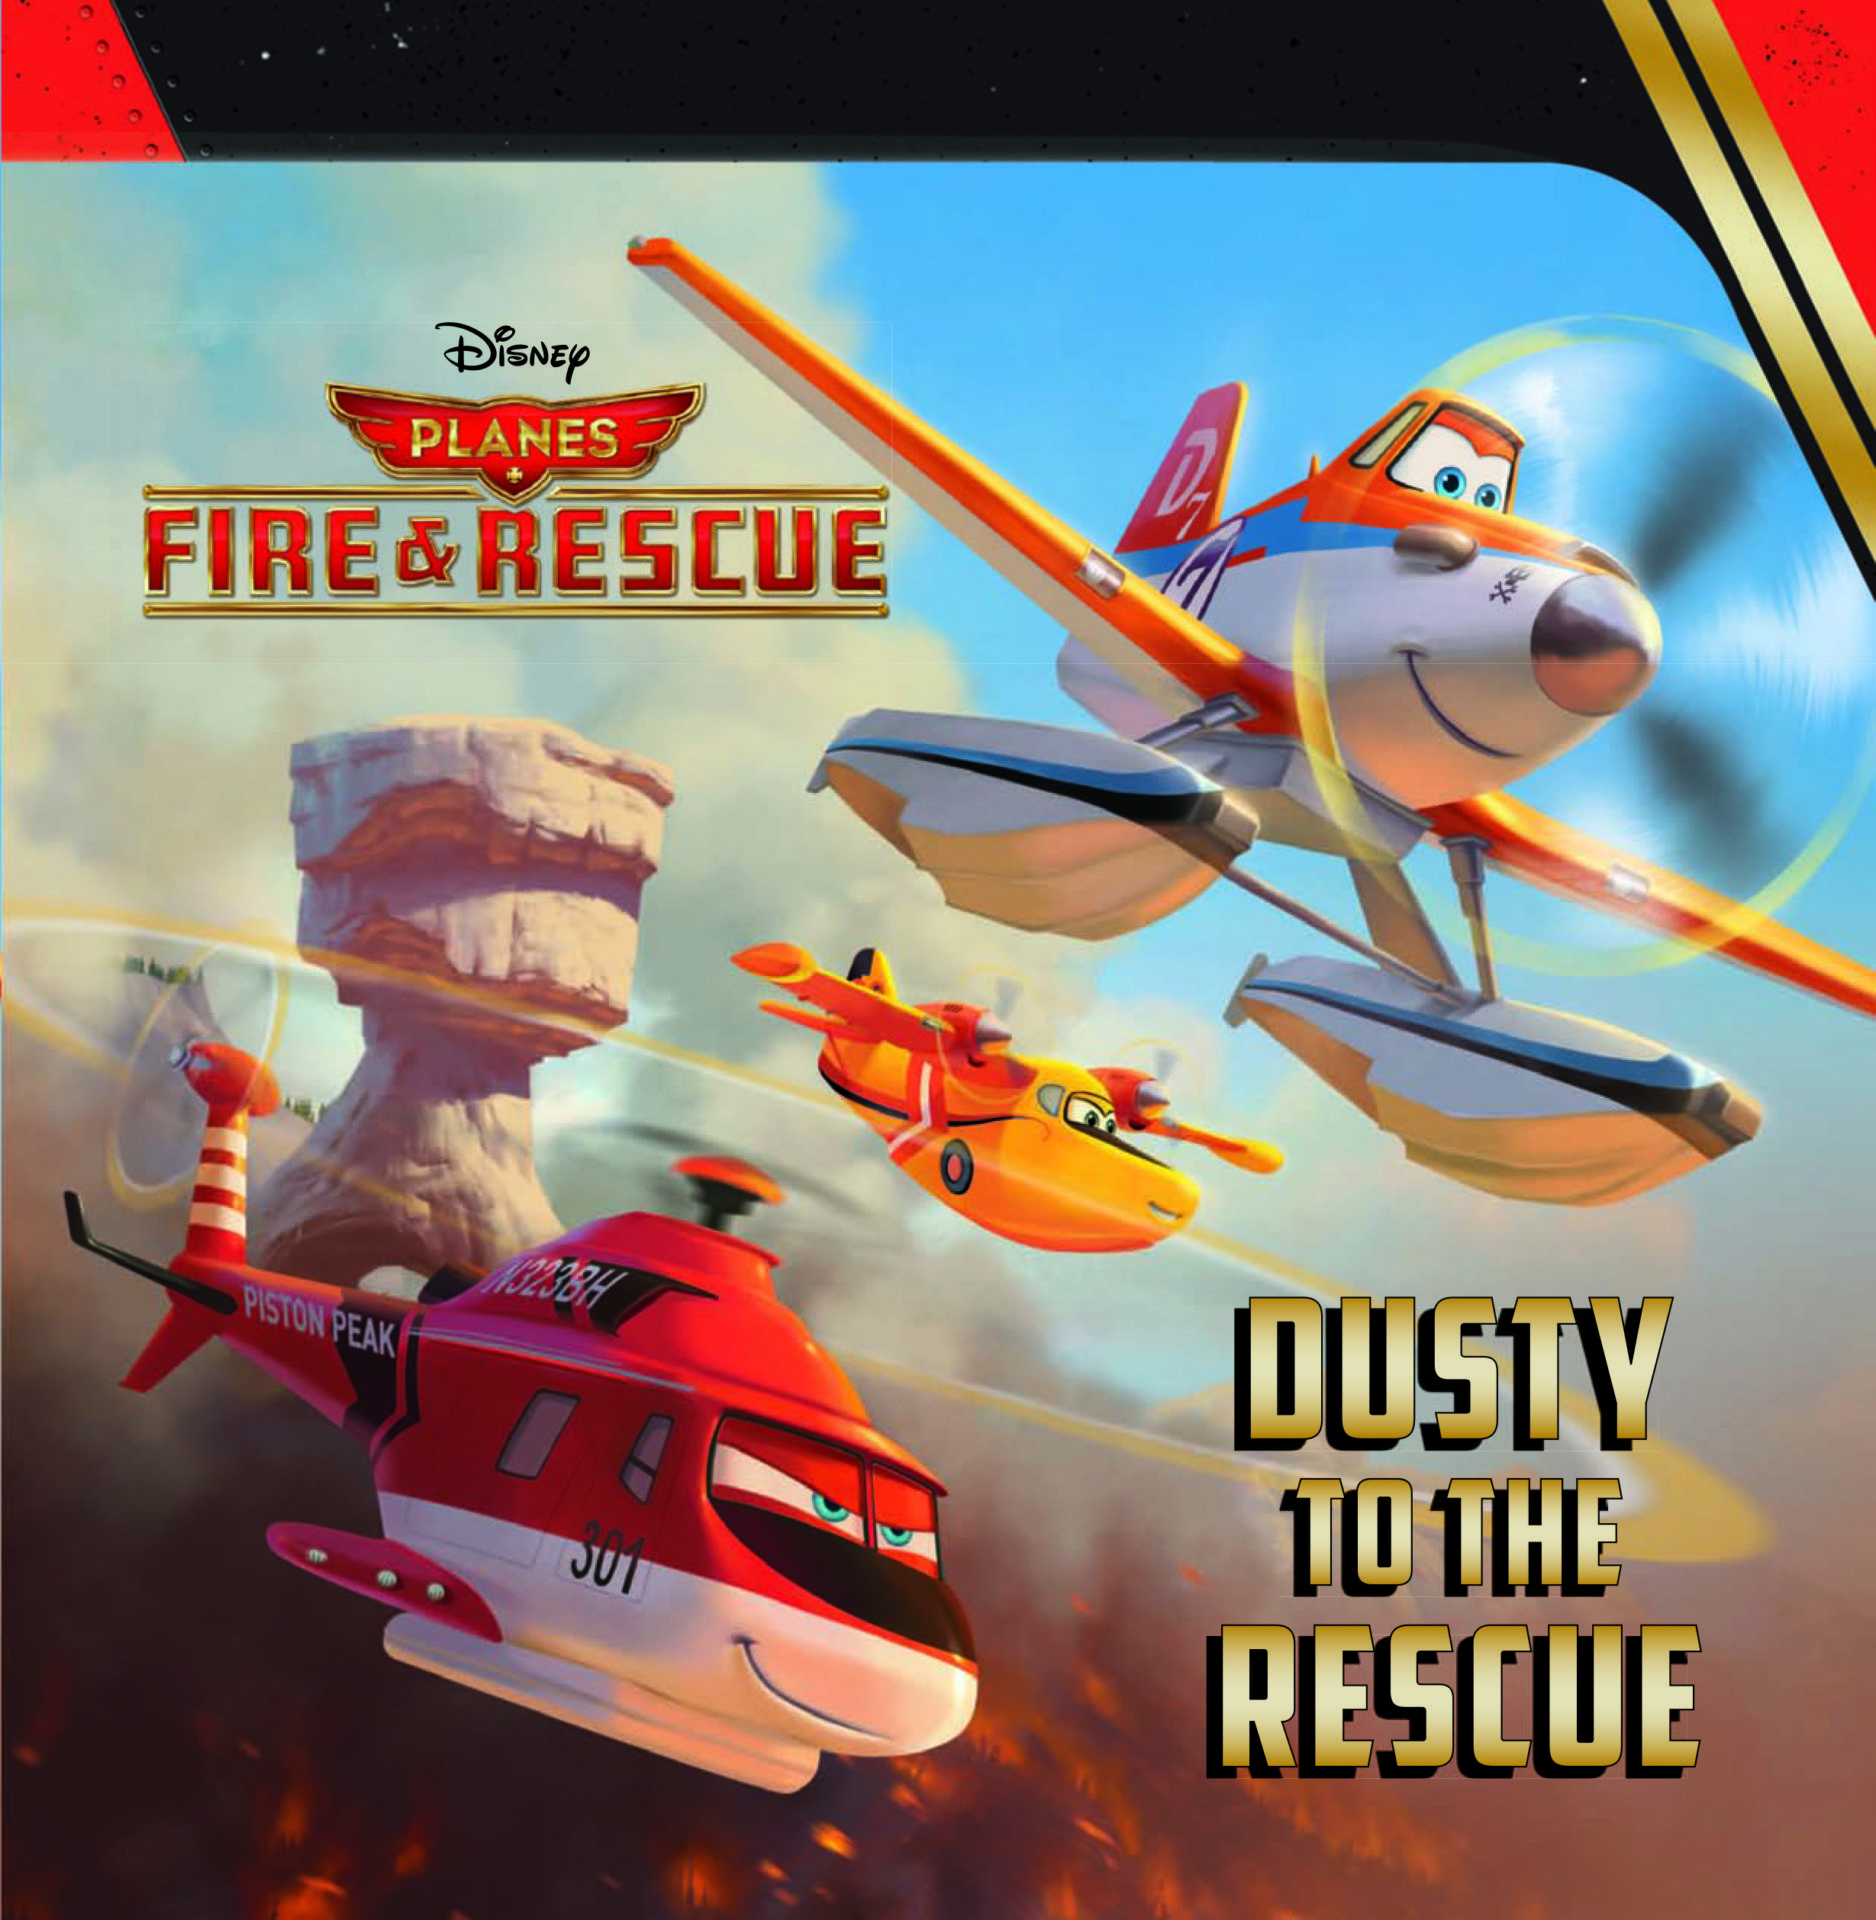 60Plans-Dusty to the Rescue